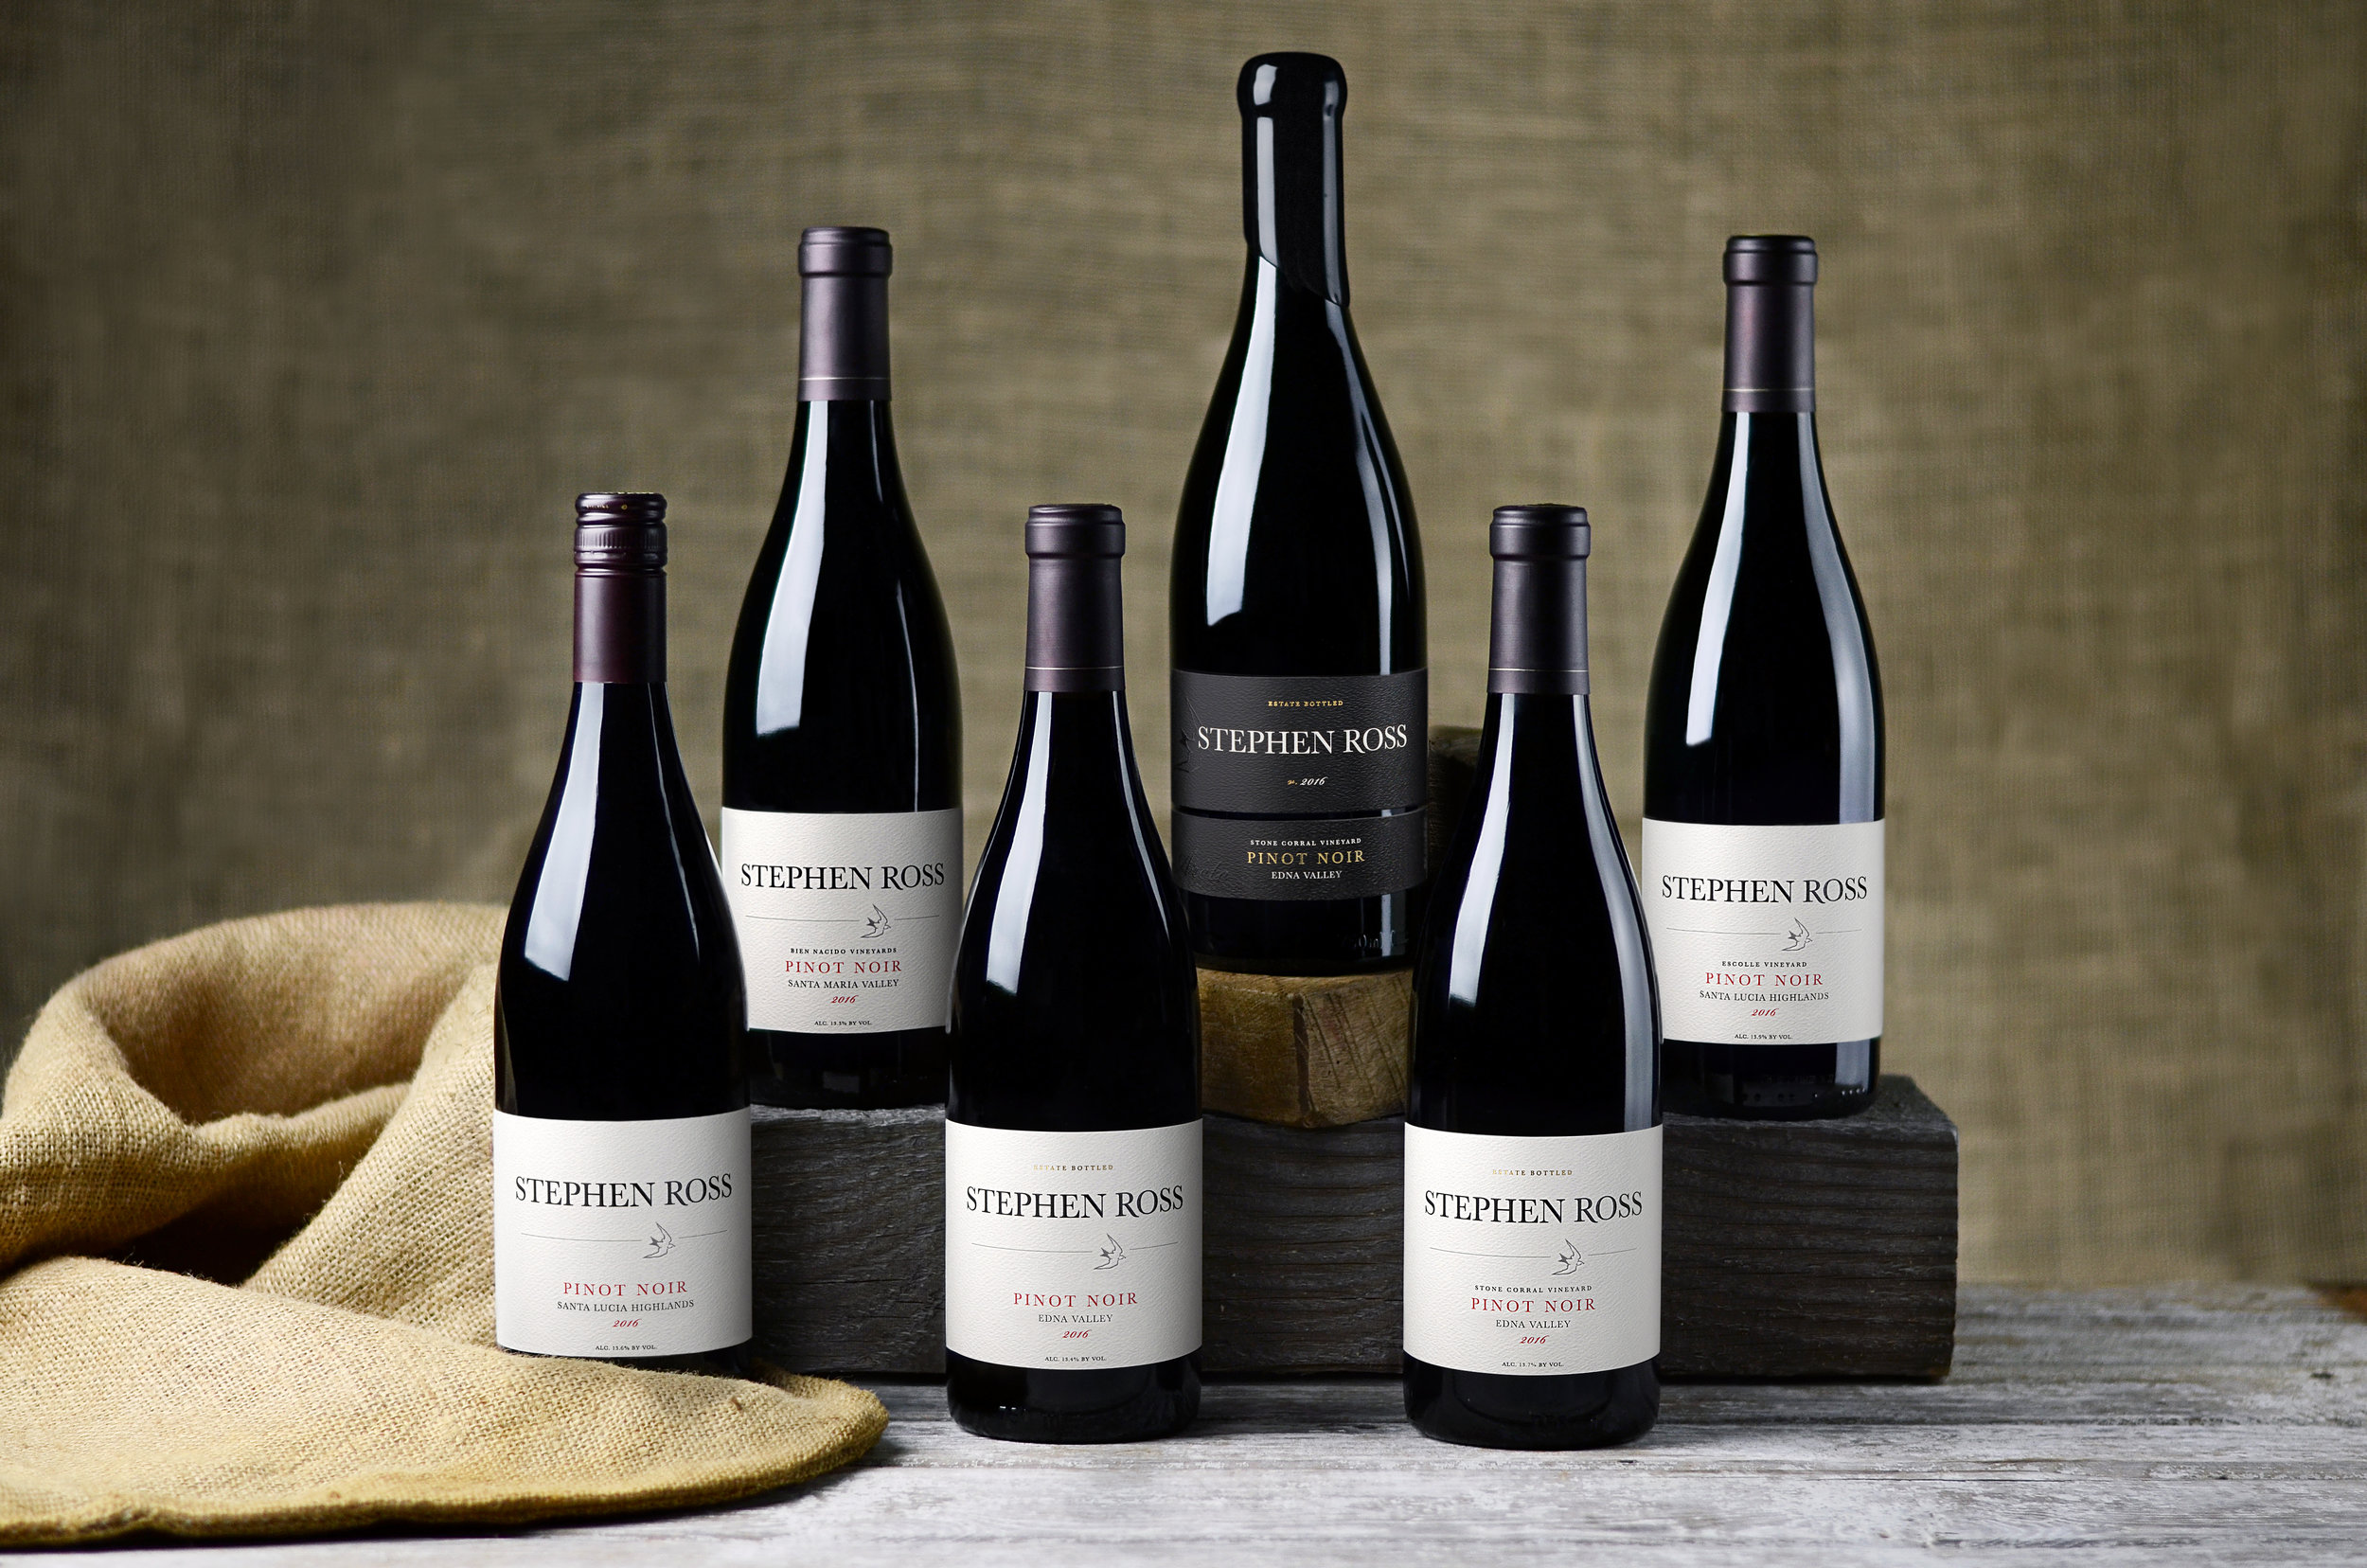 The six 2016 Pinot Noirs